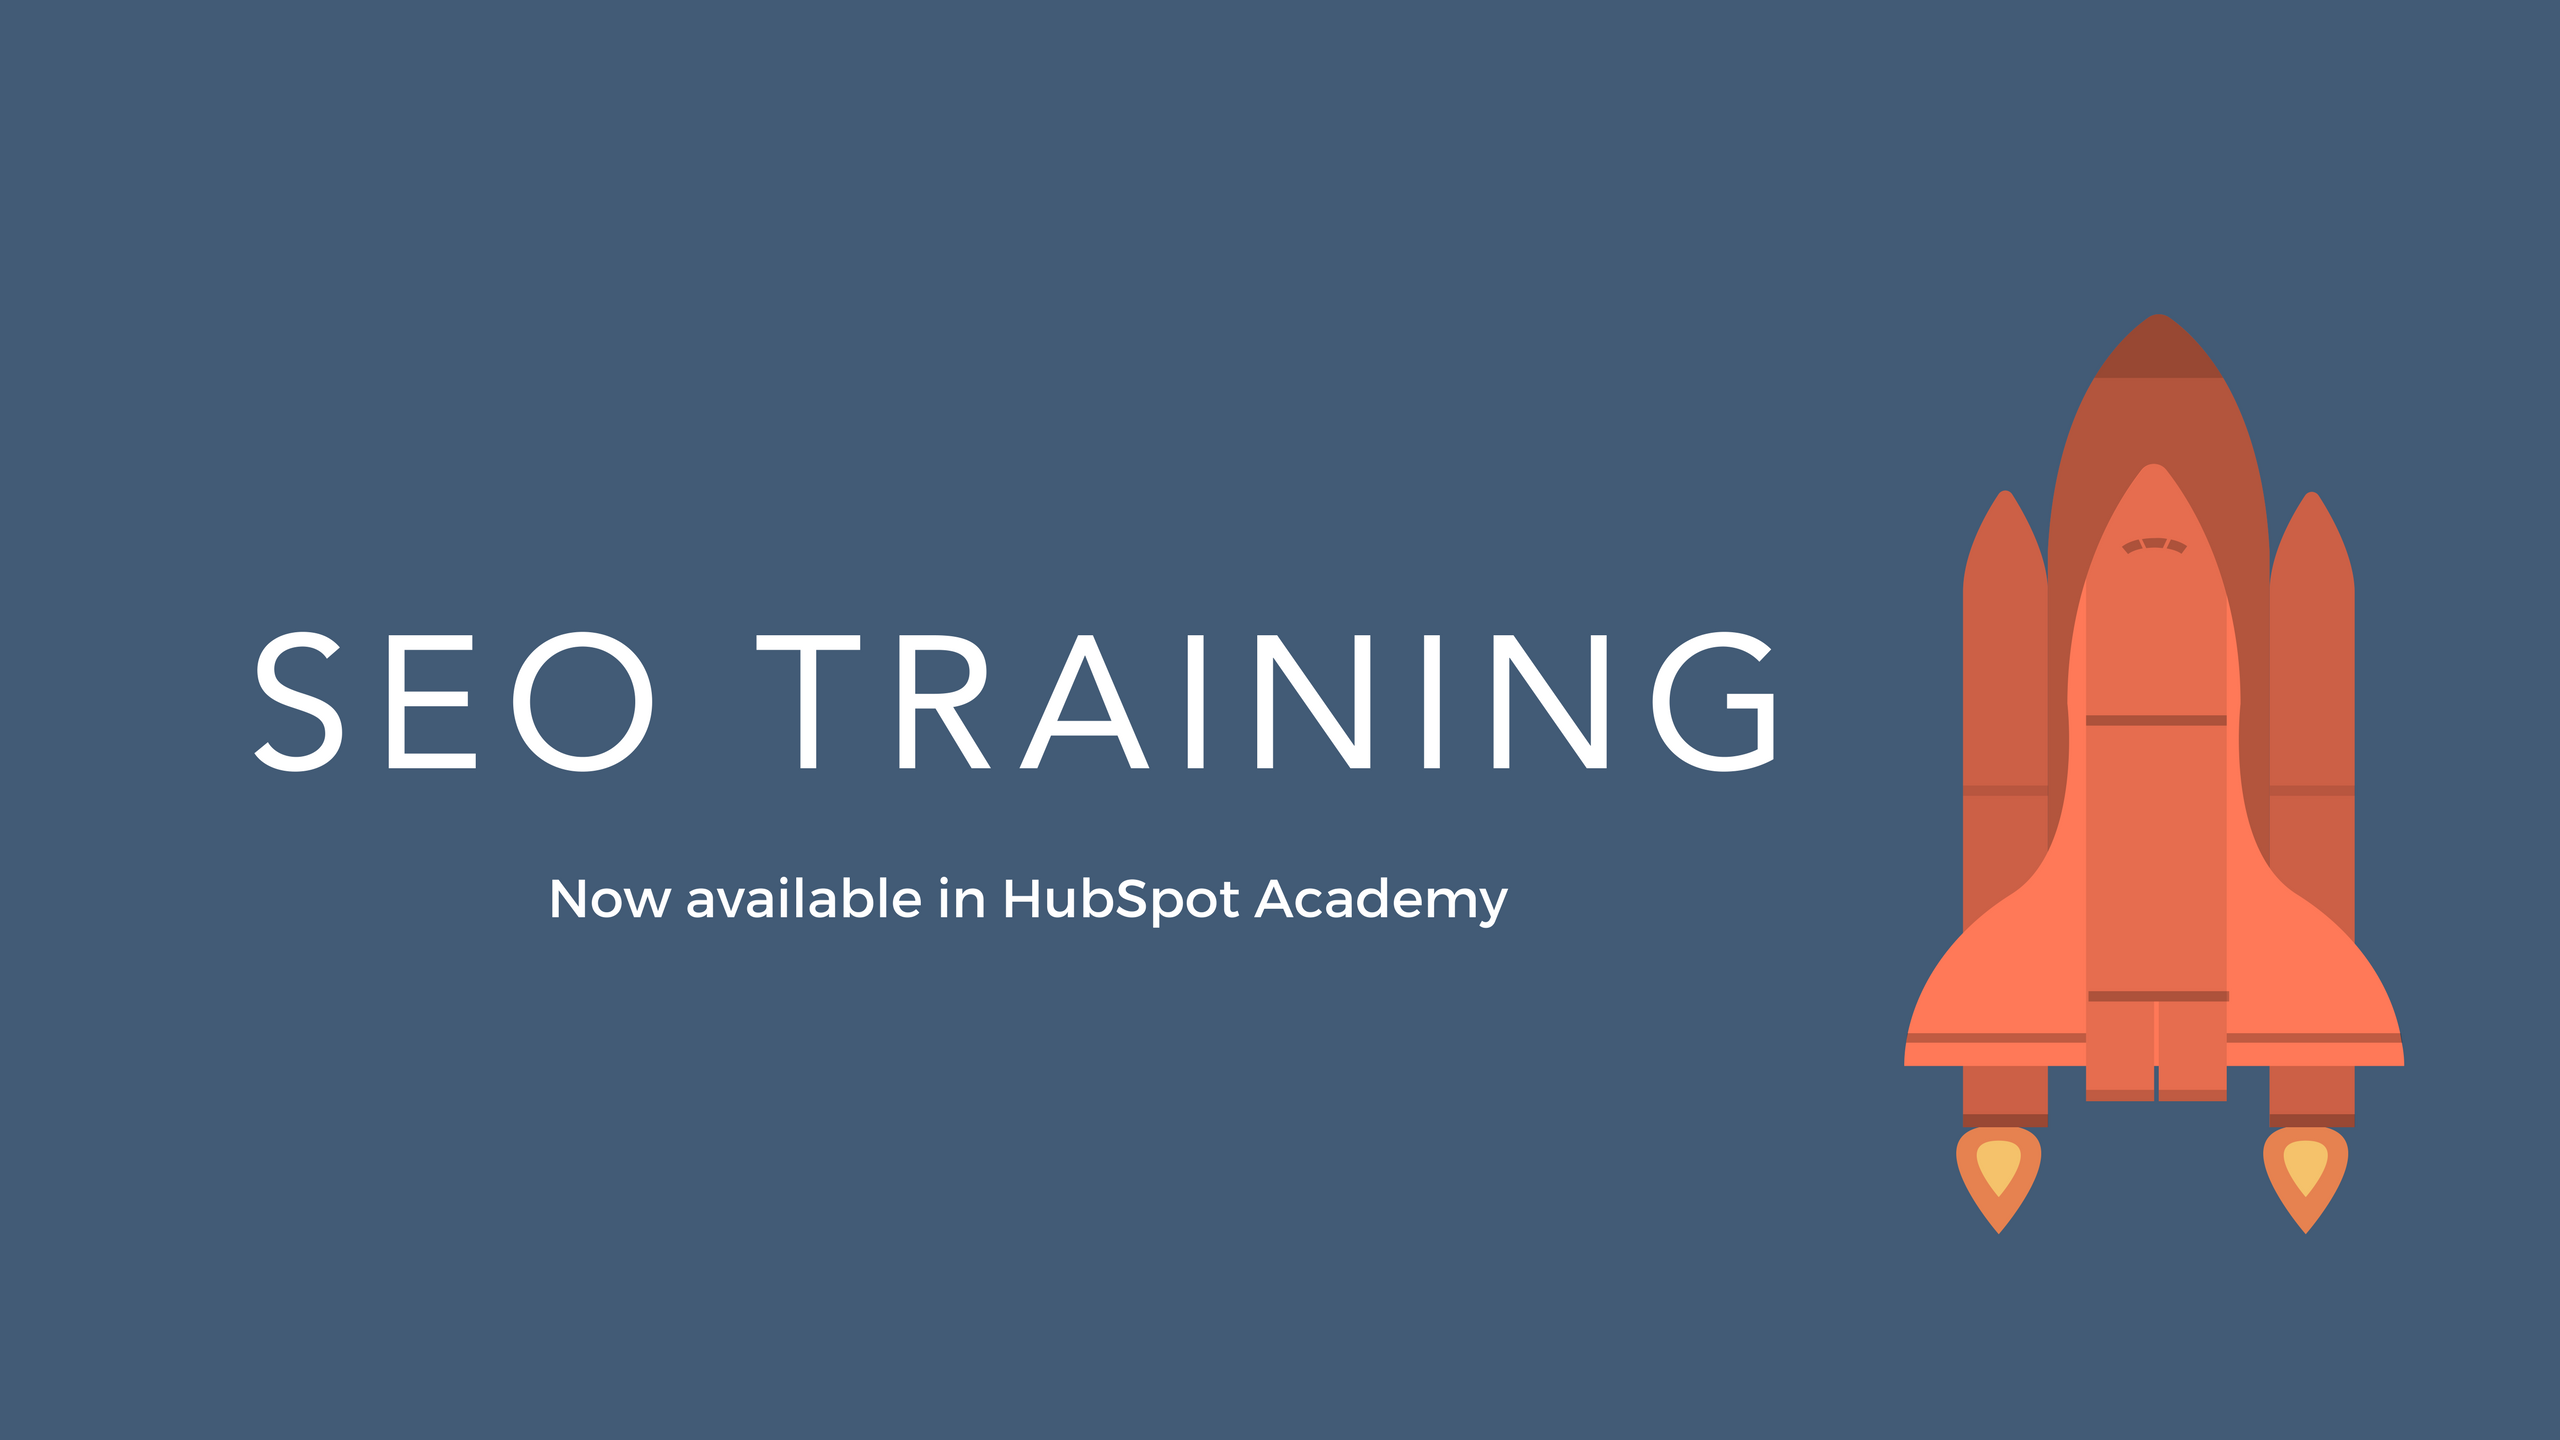 Learn How HubSpot Does SEO in Our New SEO Training Track